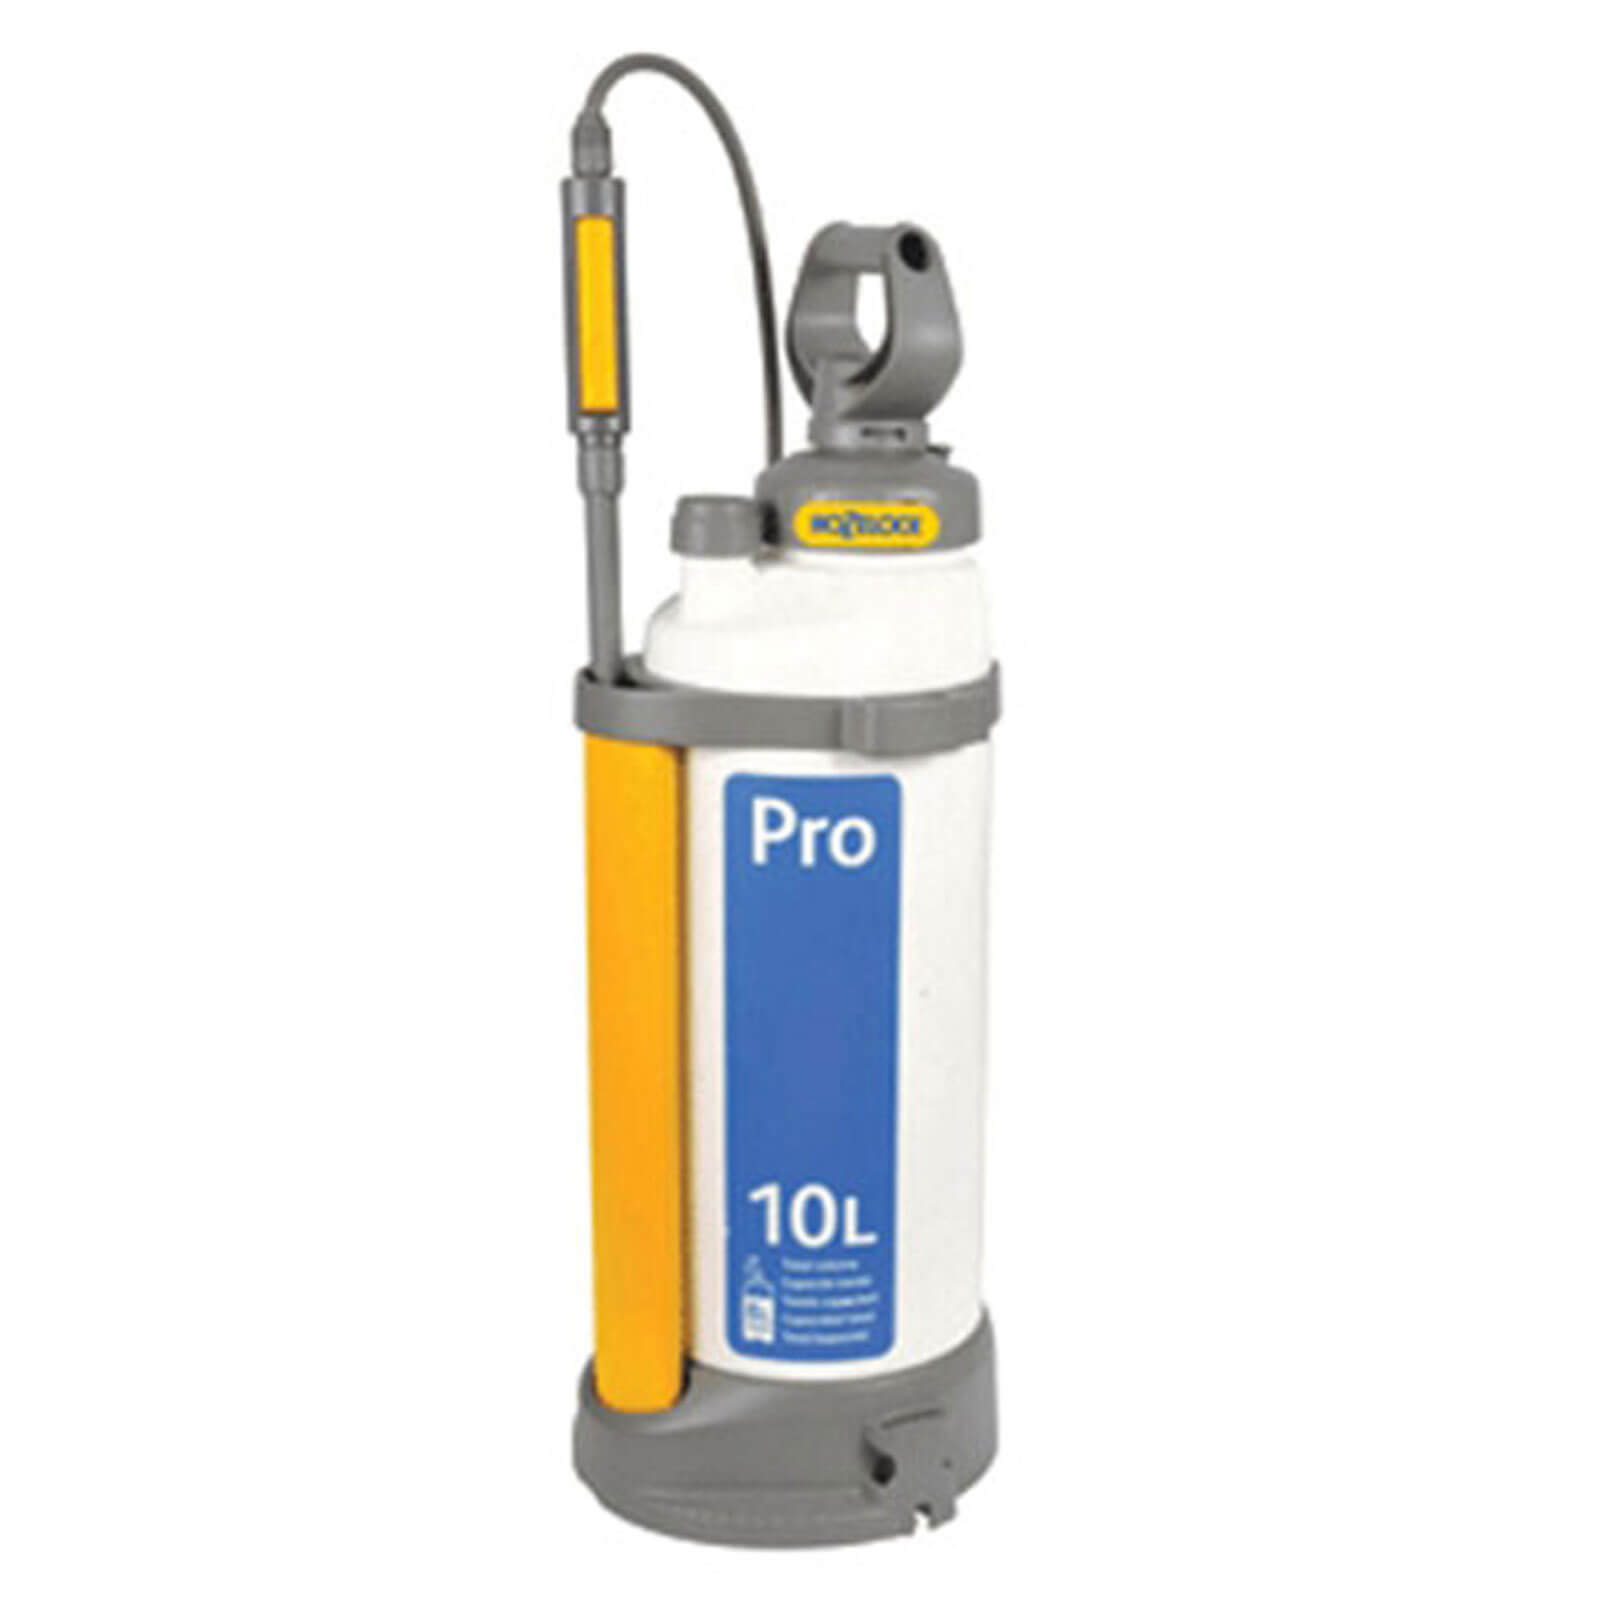 Hozelock Pro Pressure Water Sprayer 10 Litres Holds 8 Litres